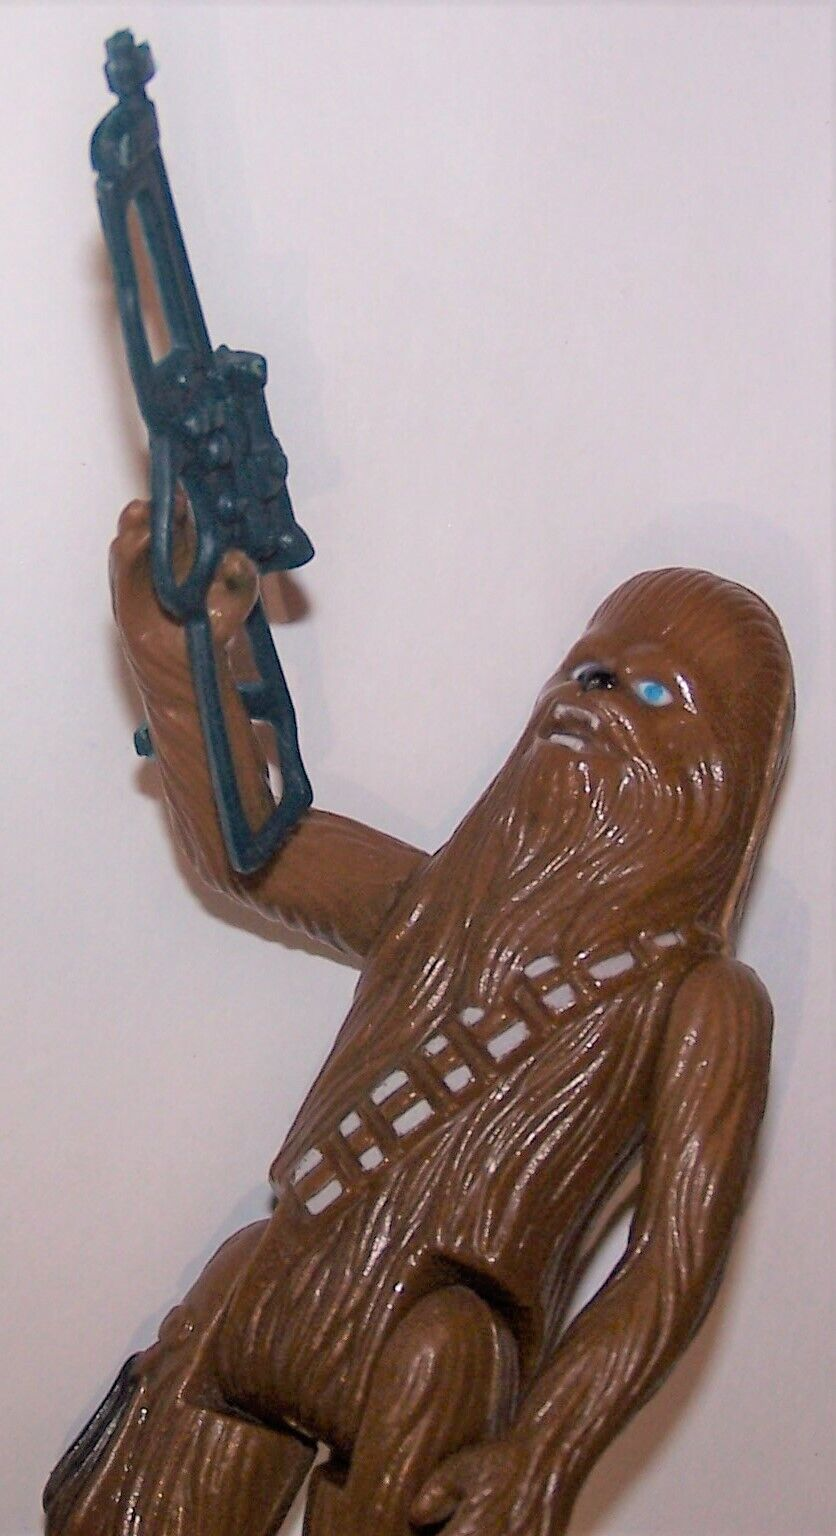 Vintage 1977 Star Wars New Hope Chewbacca Complete Action Figure by Kenner